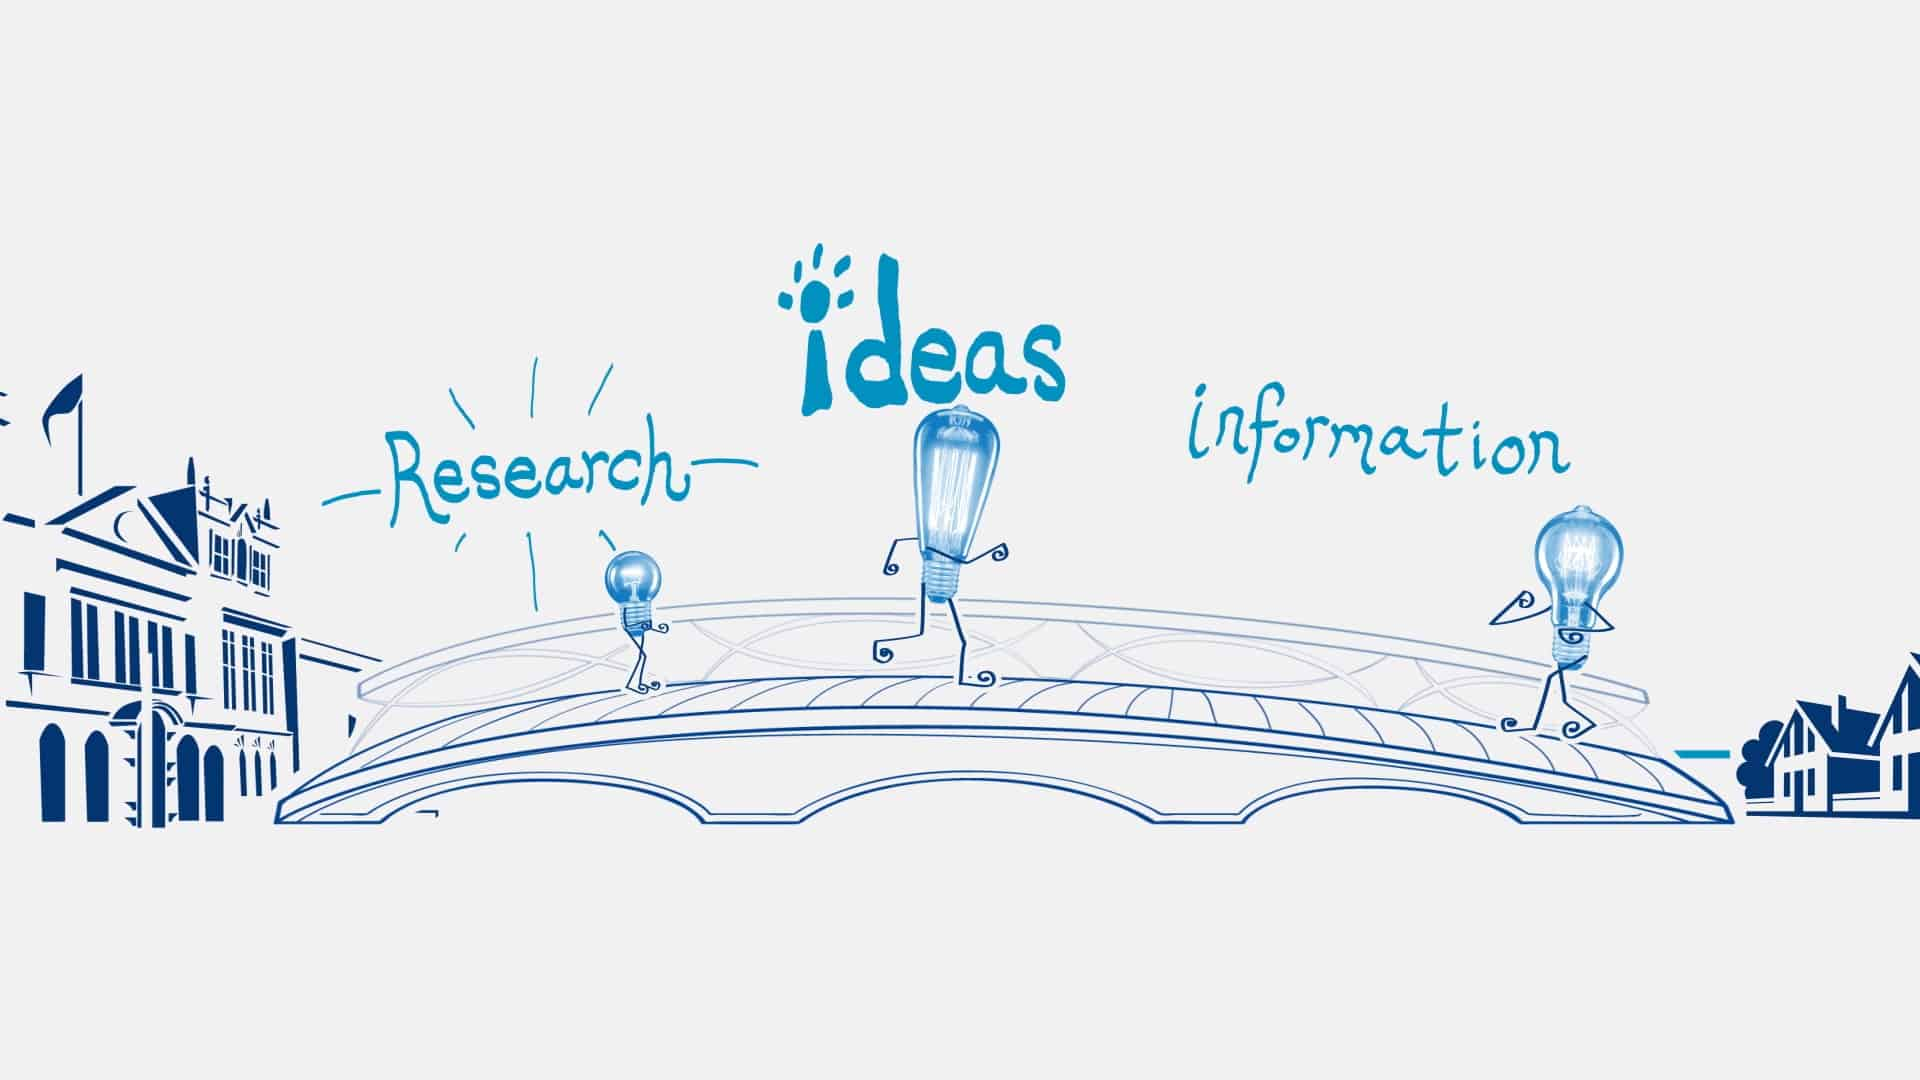 A cartoon of lightbulbs with legs walking along a bridge with the words Ideas, research and information floating above their heads